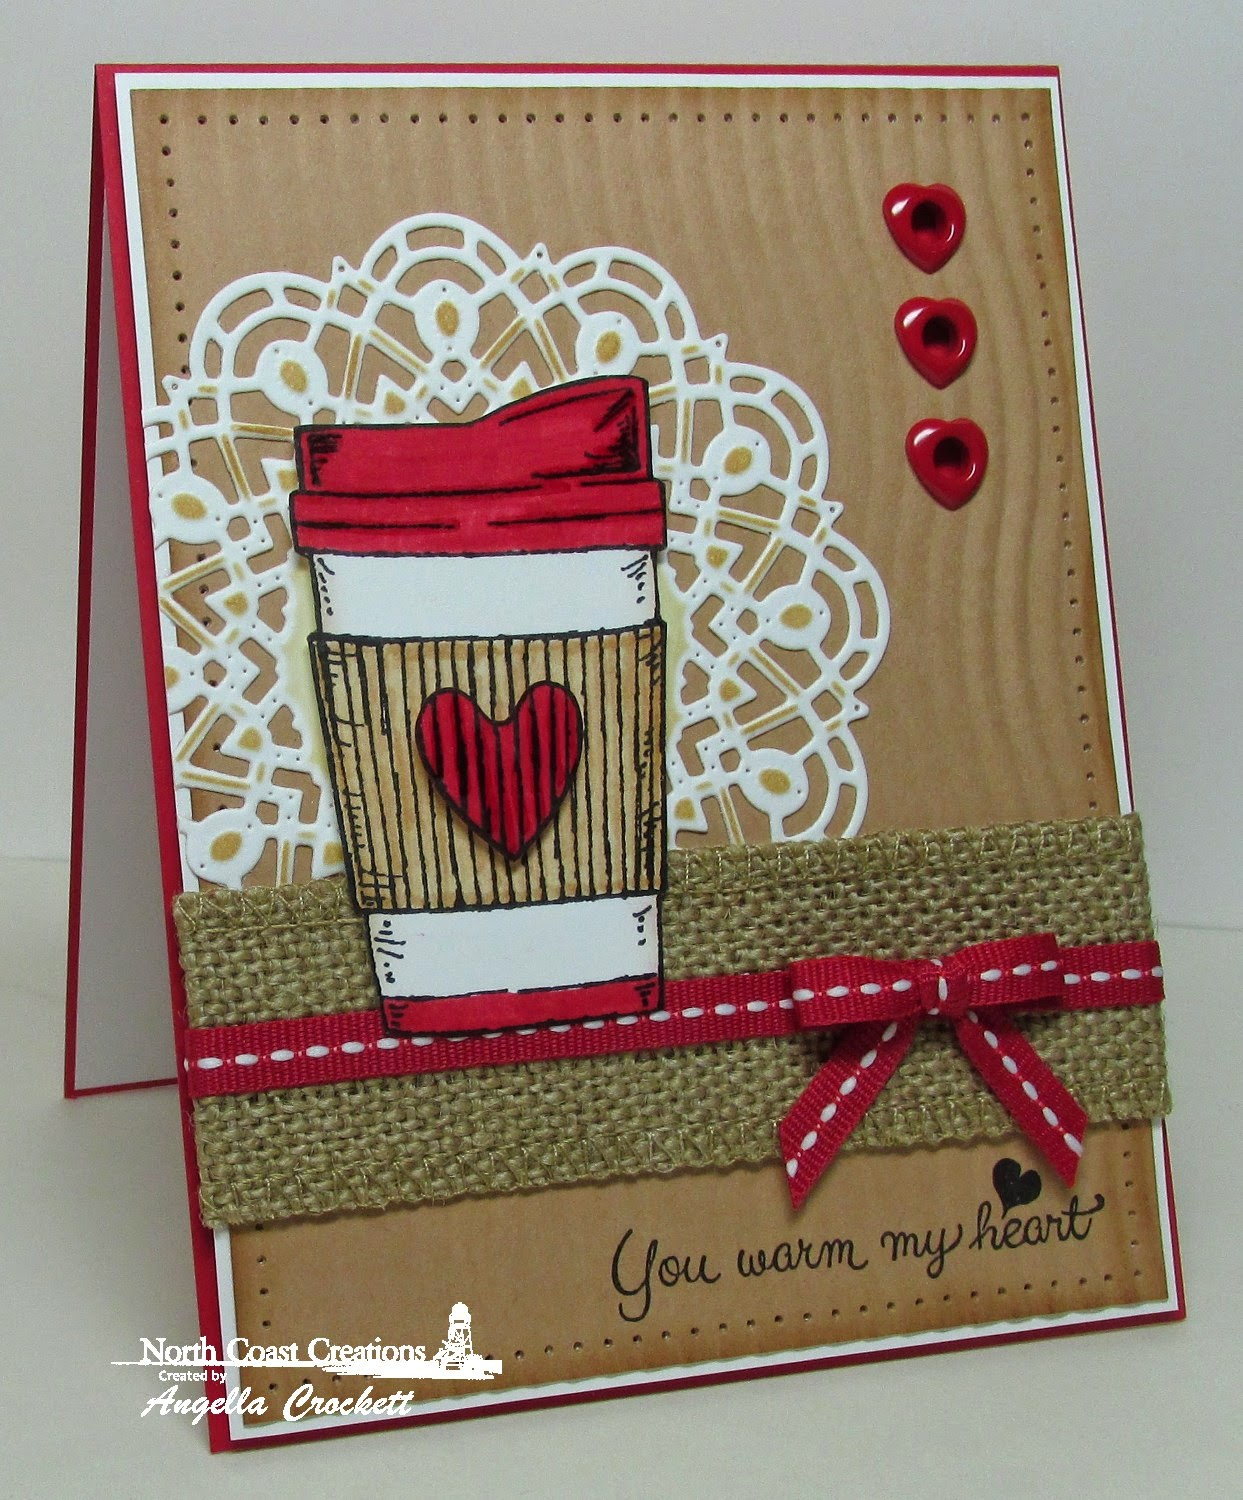 North Coast Creations Warm My Heart, ODBD Custom Doily Dies, Card Designer Angie Crockett